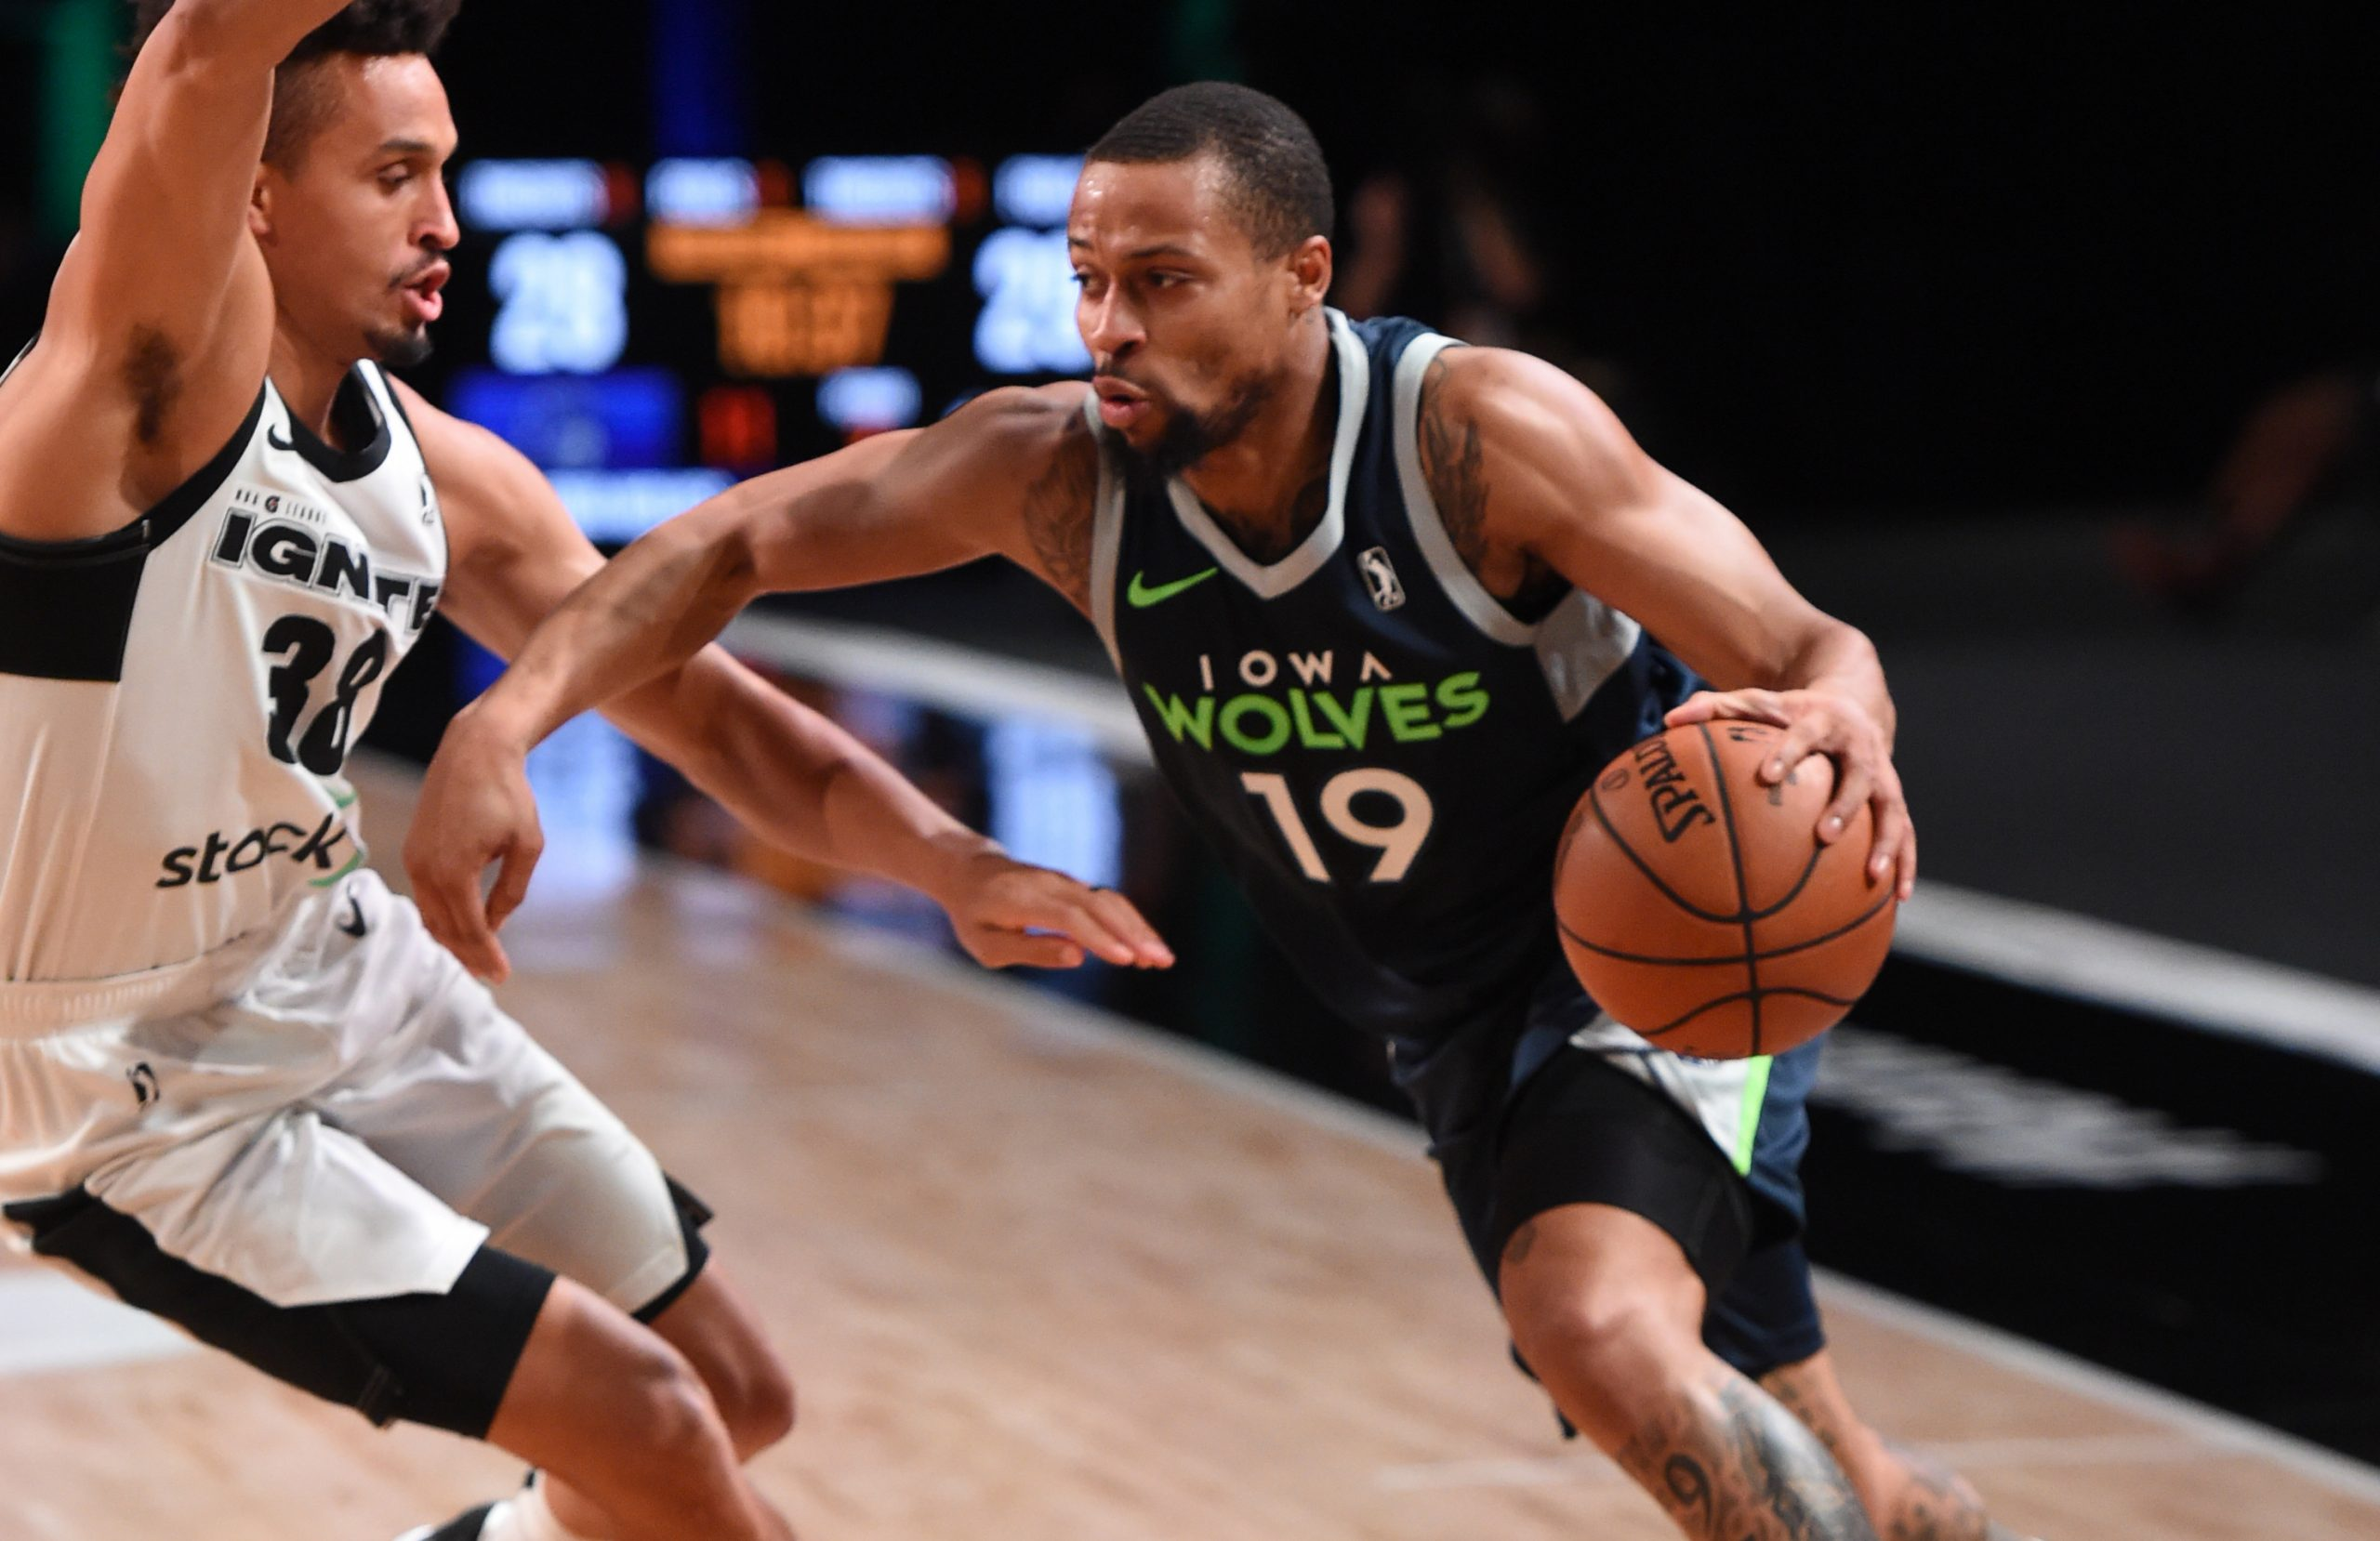 ORLANDO, FL - FEBRUARY 15: Isaiah Briscoe #19 of the Iowa Wolves drives to the basket against Team Ignite on February 15, 2021 at AdventHealth Arena in Orlando, Florida. NOTE TO USER: User expressly acknowledges and agrees that, by downloading and/or using this Photograph, user is consenting to the terms and conditions of the Getty Images License Agreement. Mandatory Copyright Notice: Copyright 2021 NBAE (Photo by Juan Ocampo/NBAE via Getty Images)